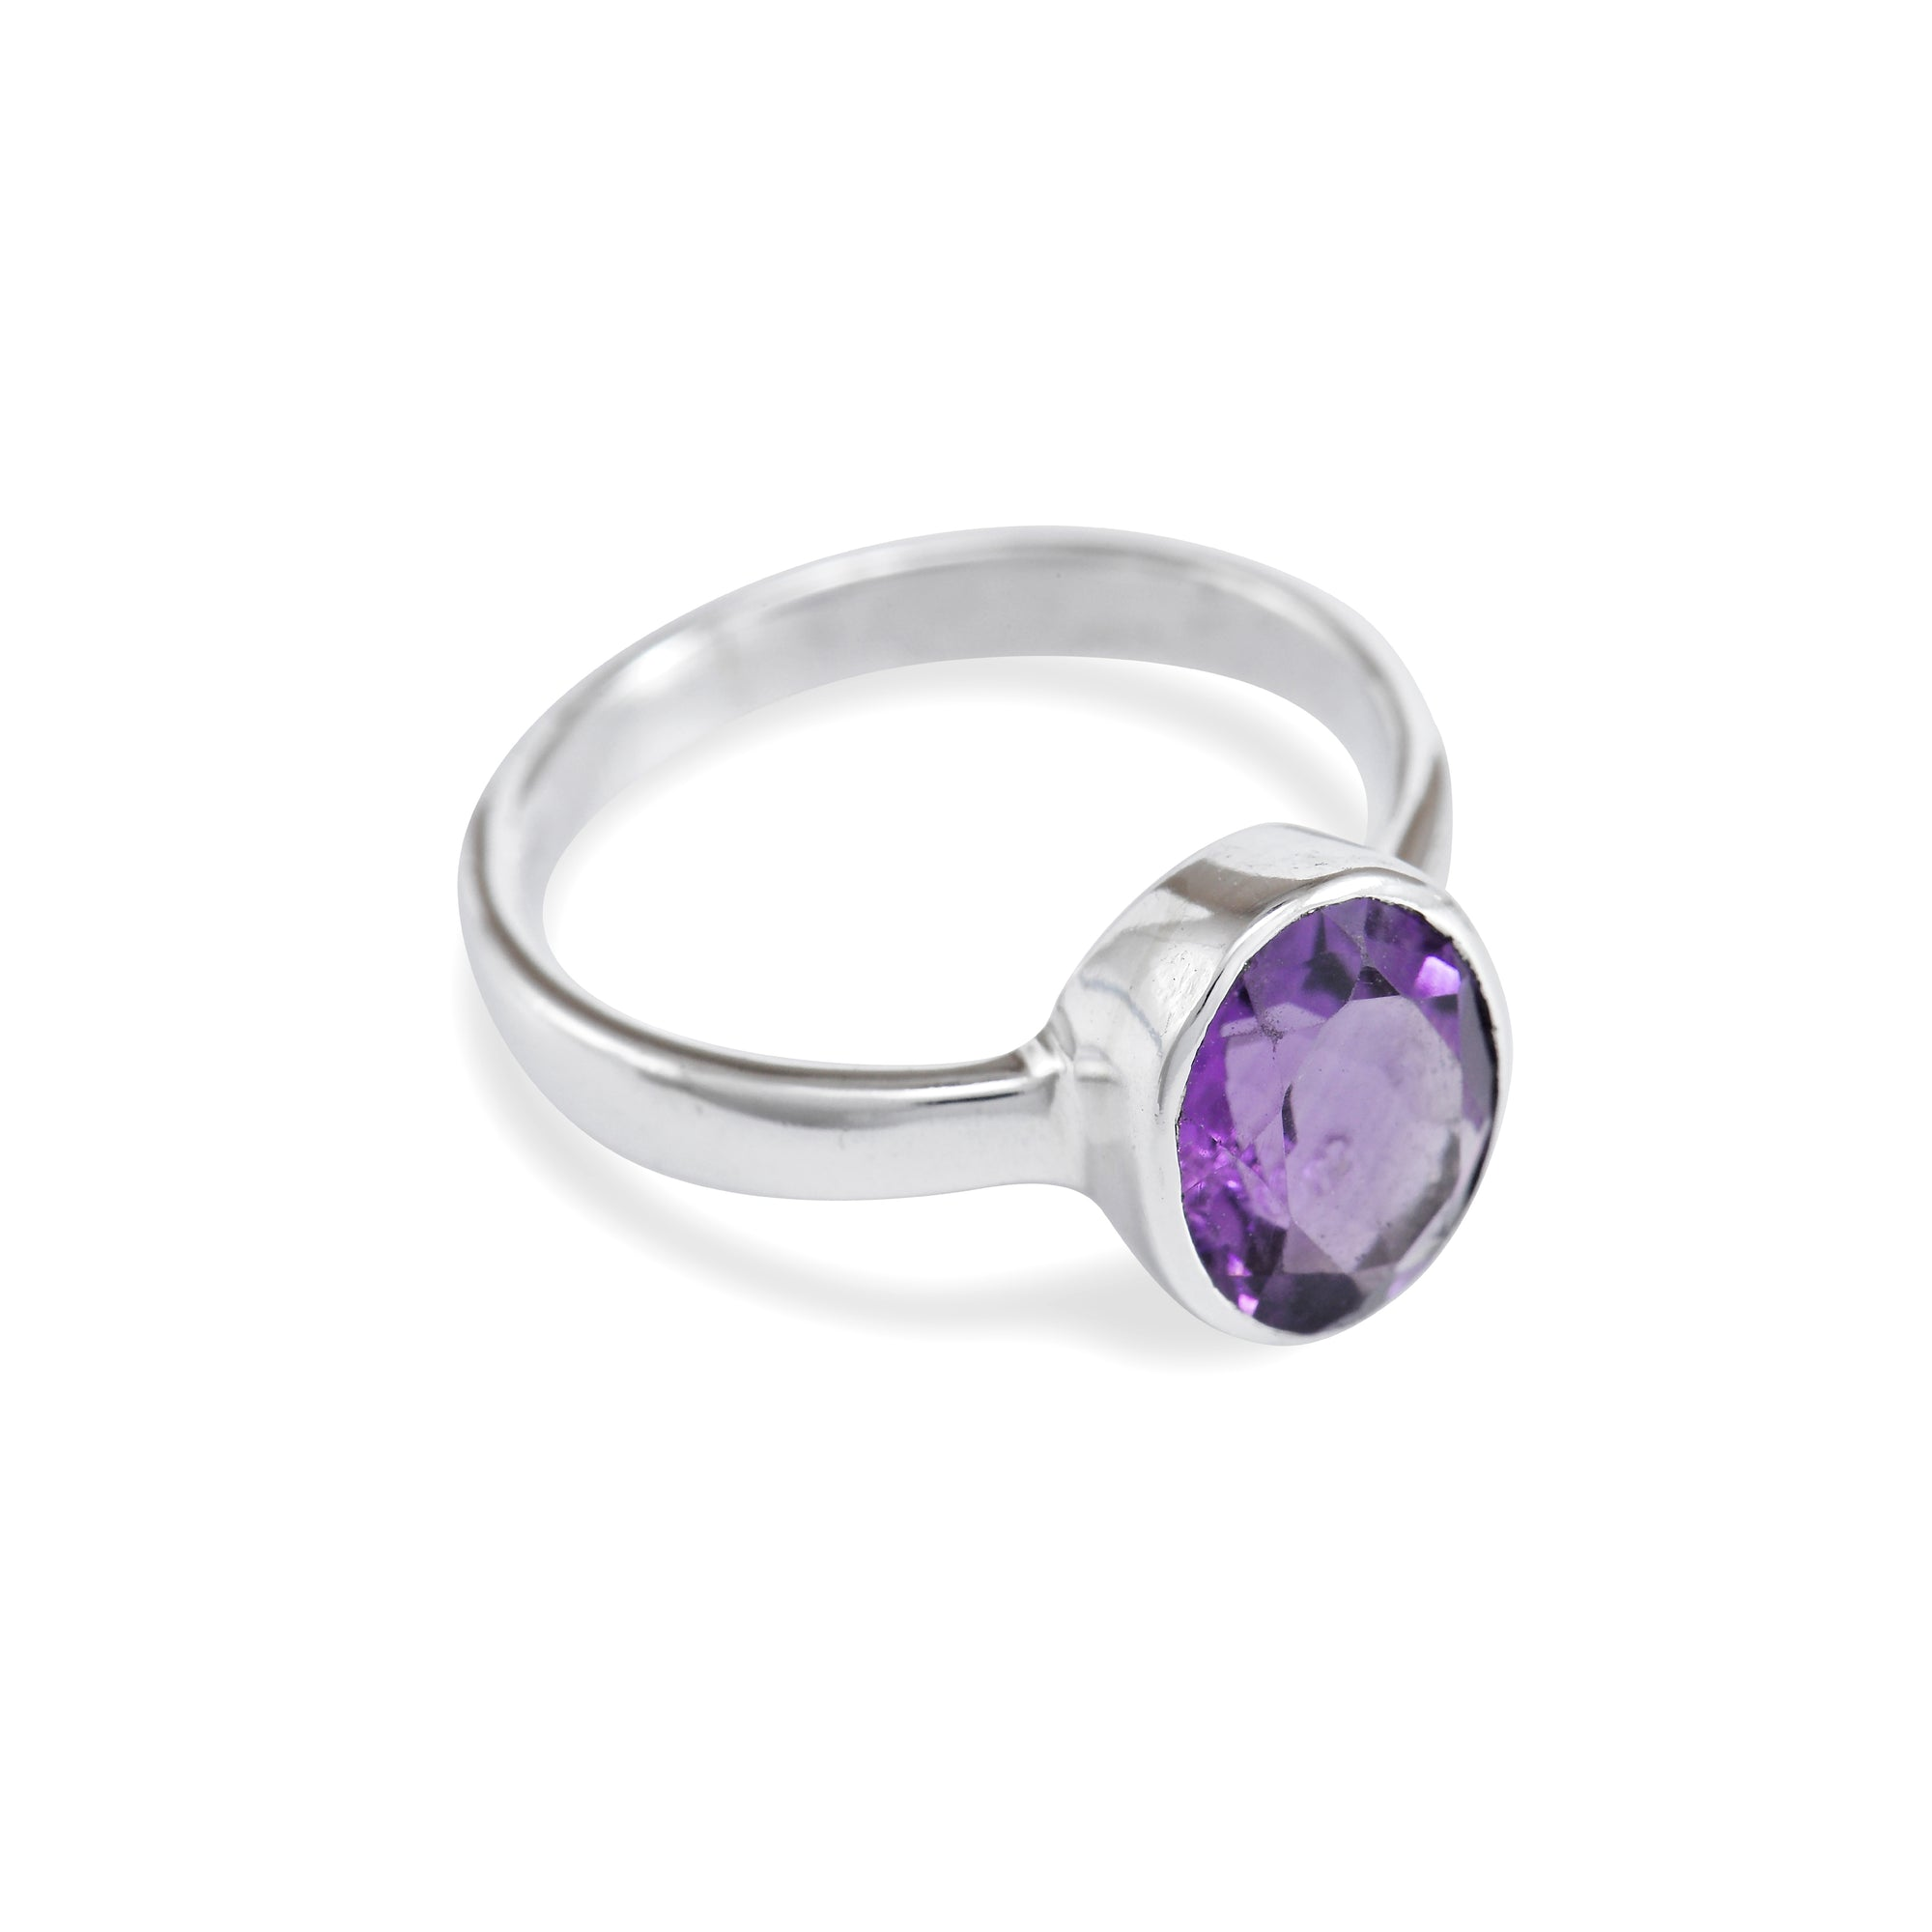 Facetted Amethyst Ring